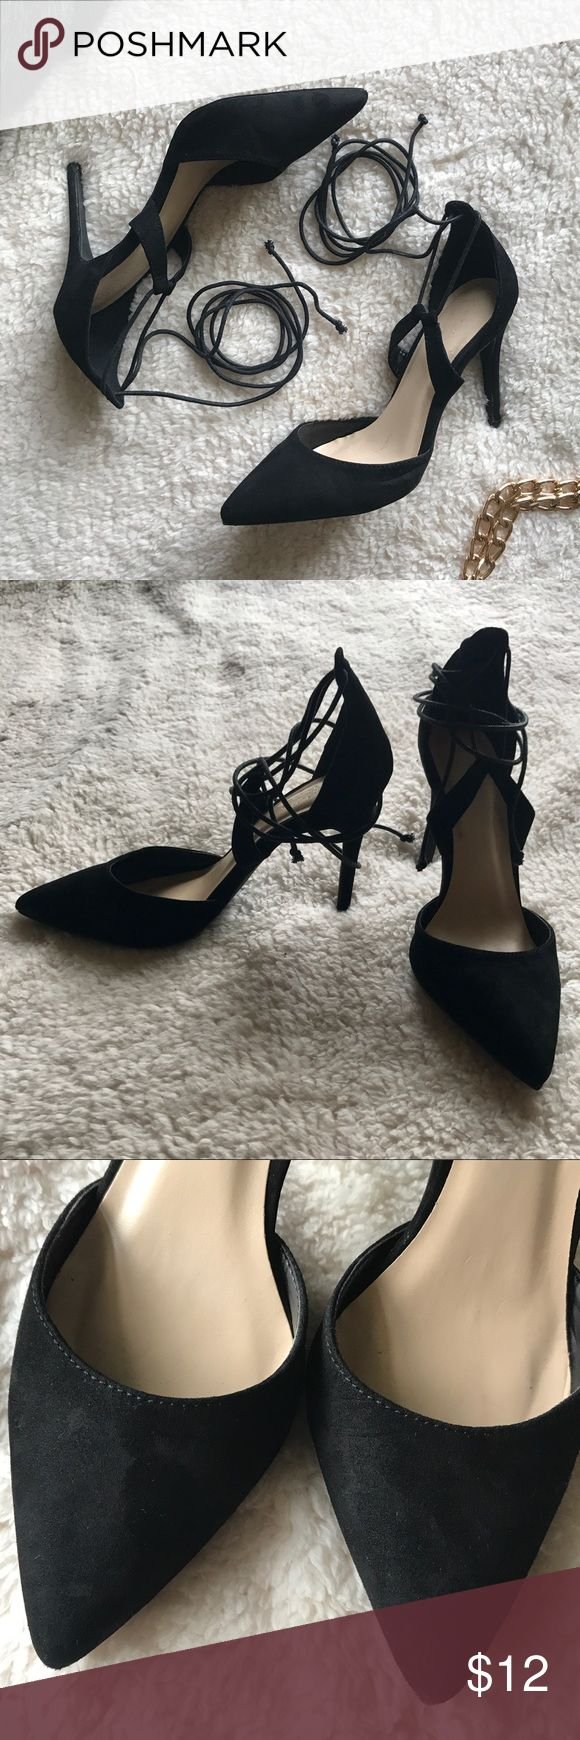 """Charlotte Russe Tie-Up Black Heels Worn twice, good condition. About 4"""" high. The shoes are in a fuzzy, velvet-like material. A cute compliment to formal/semi-formal dresses. Charlotte Russe Shoes Heels"""